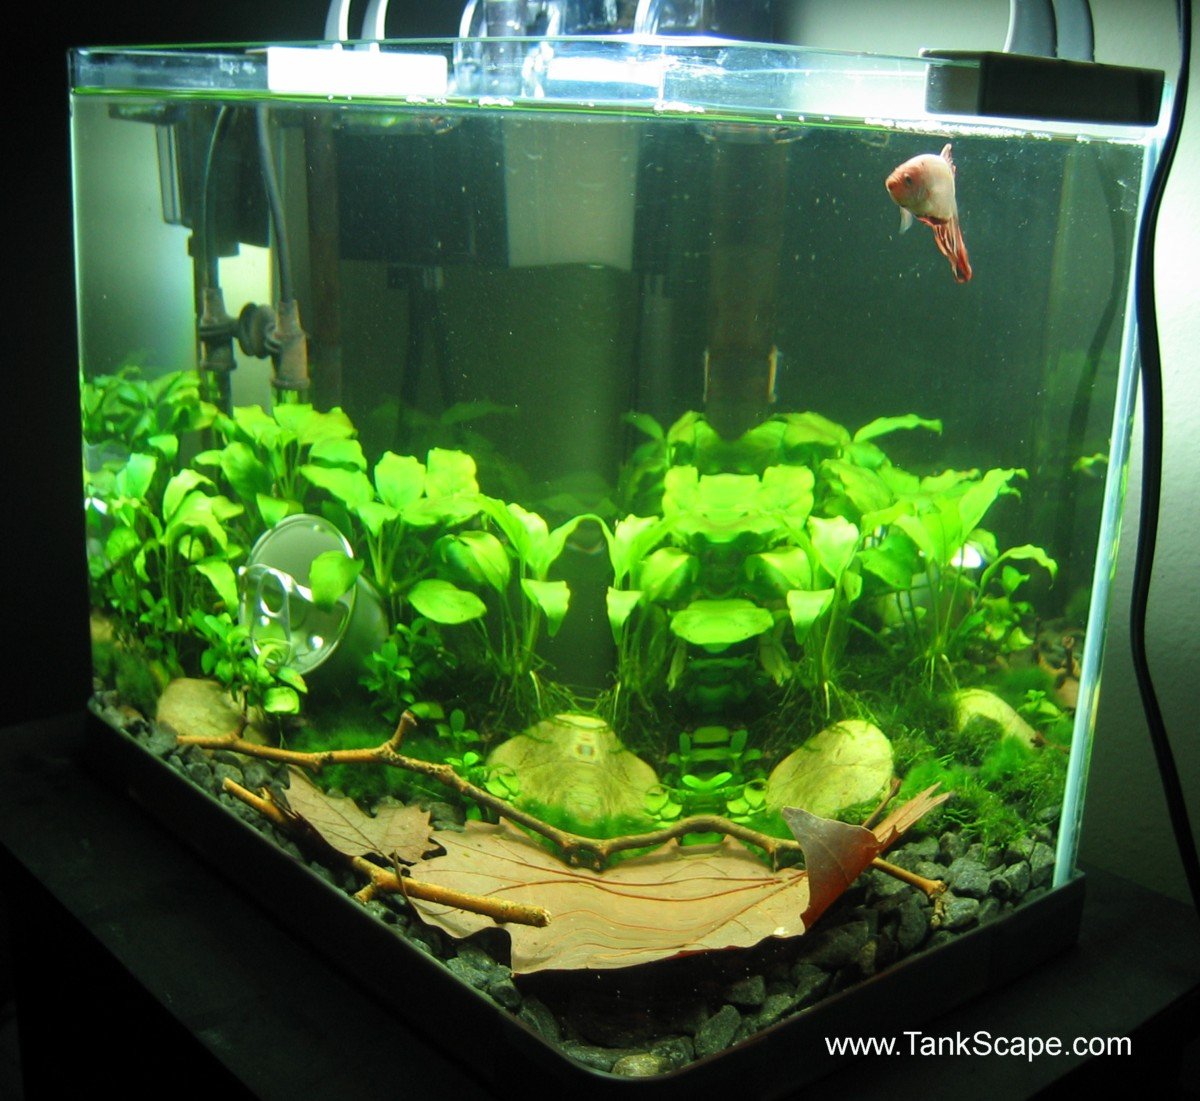 Betta fish tank setup ideas that make a statement for Fish for a 10 gallon tank